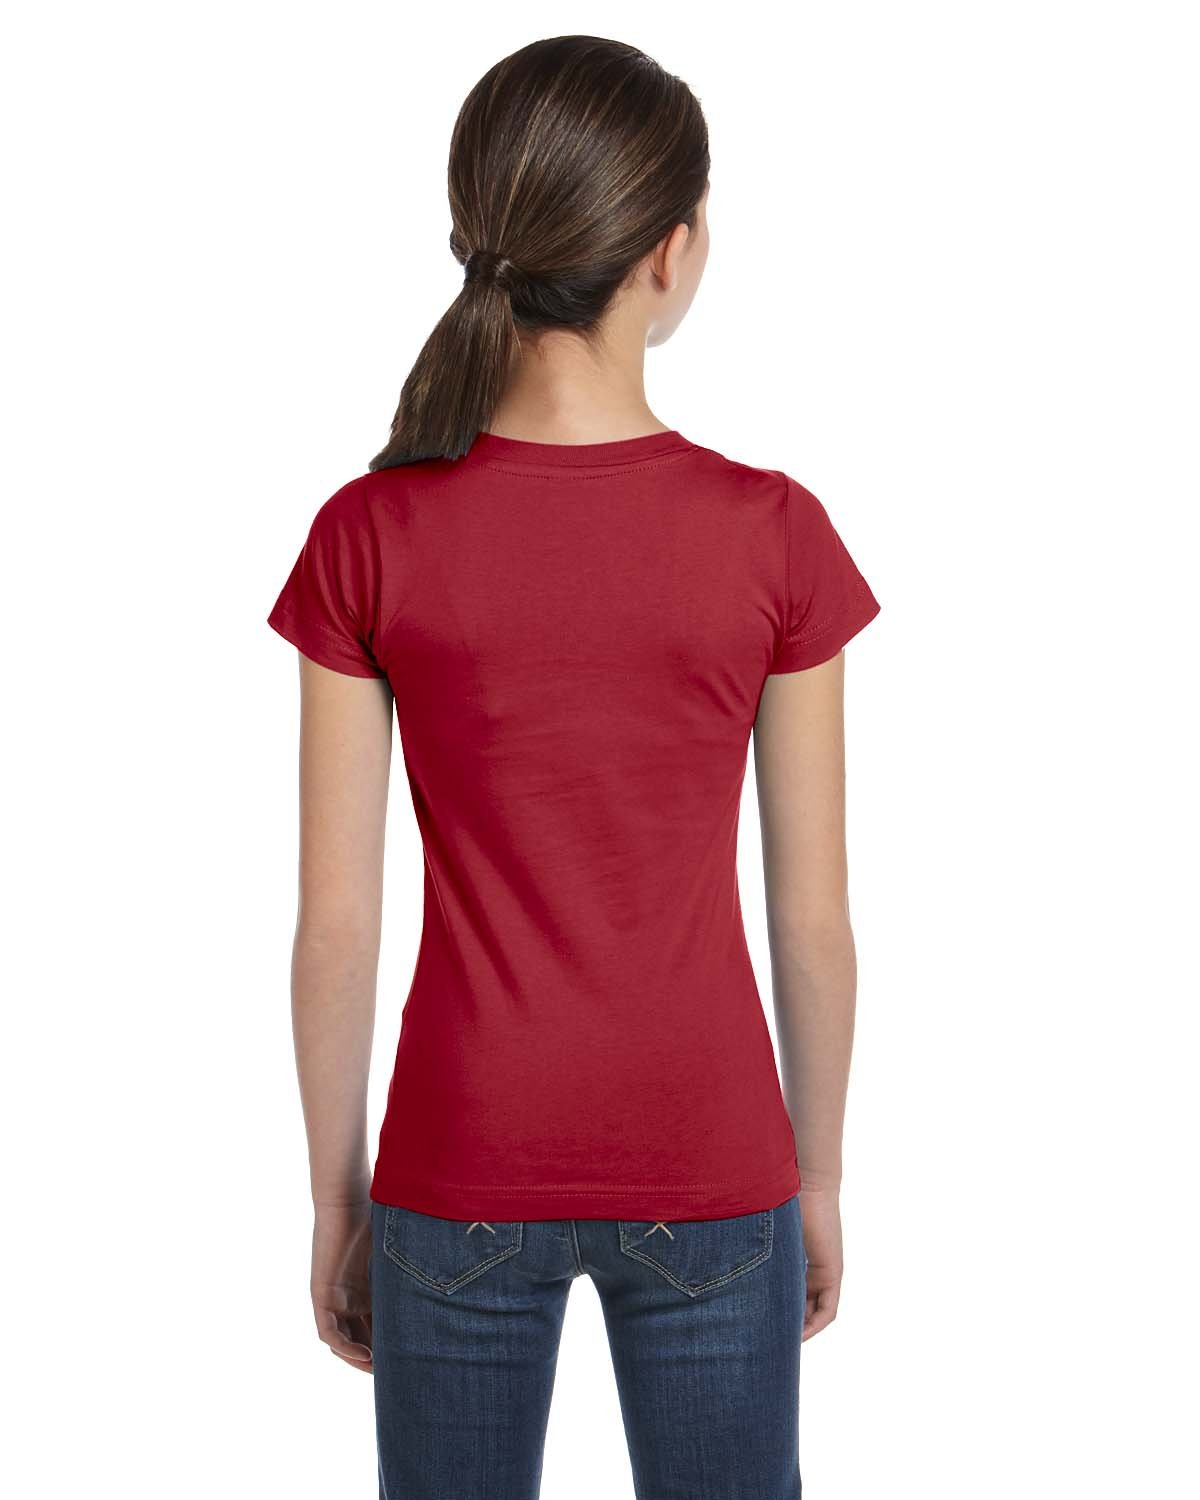 LAT Sportswear Girl's Fine Jersey Longer-Length T-Shirt, Garnet, X-Large by LAT (Image #1)